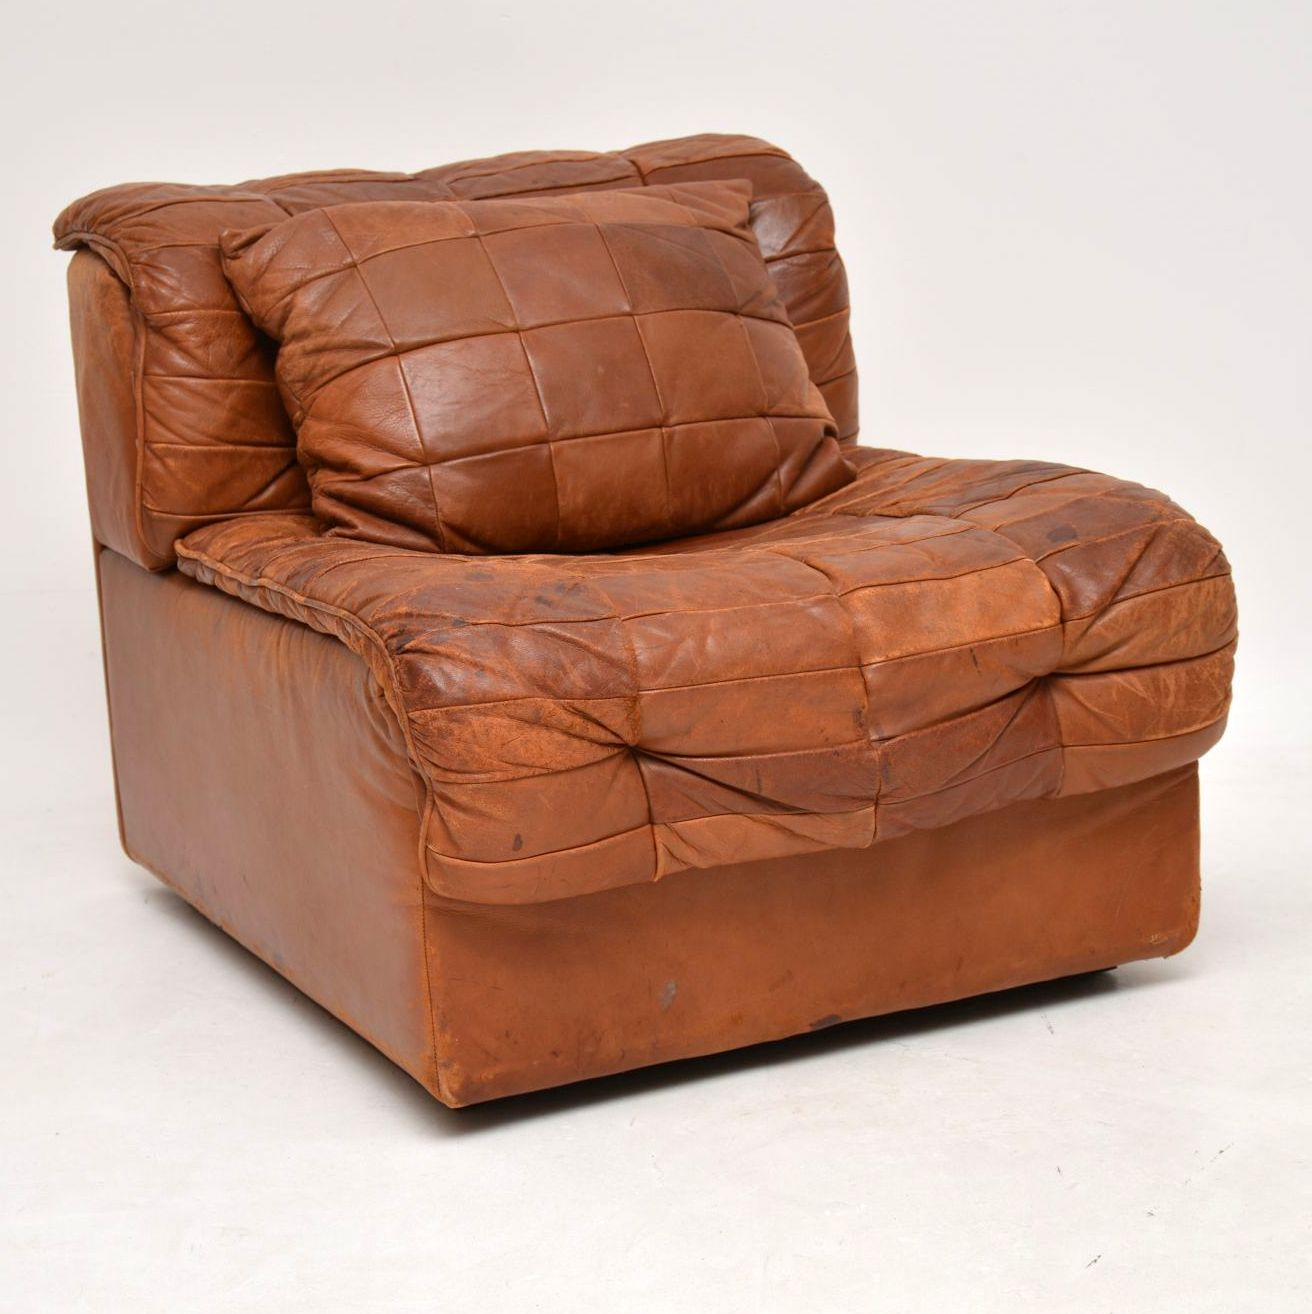 1960's Vintage Leather Modular Chair & Cushion by De Sede